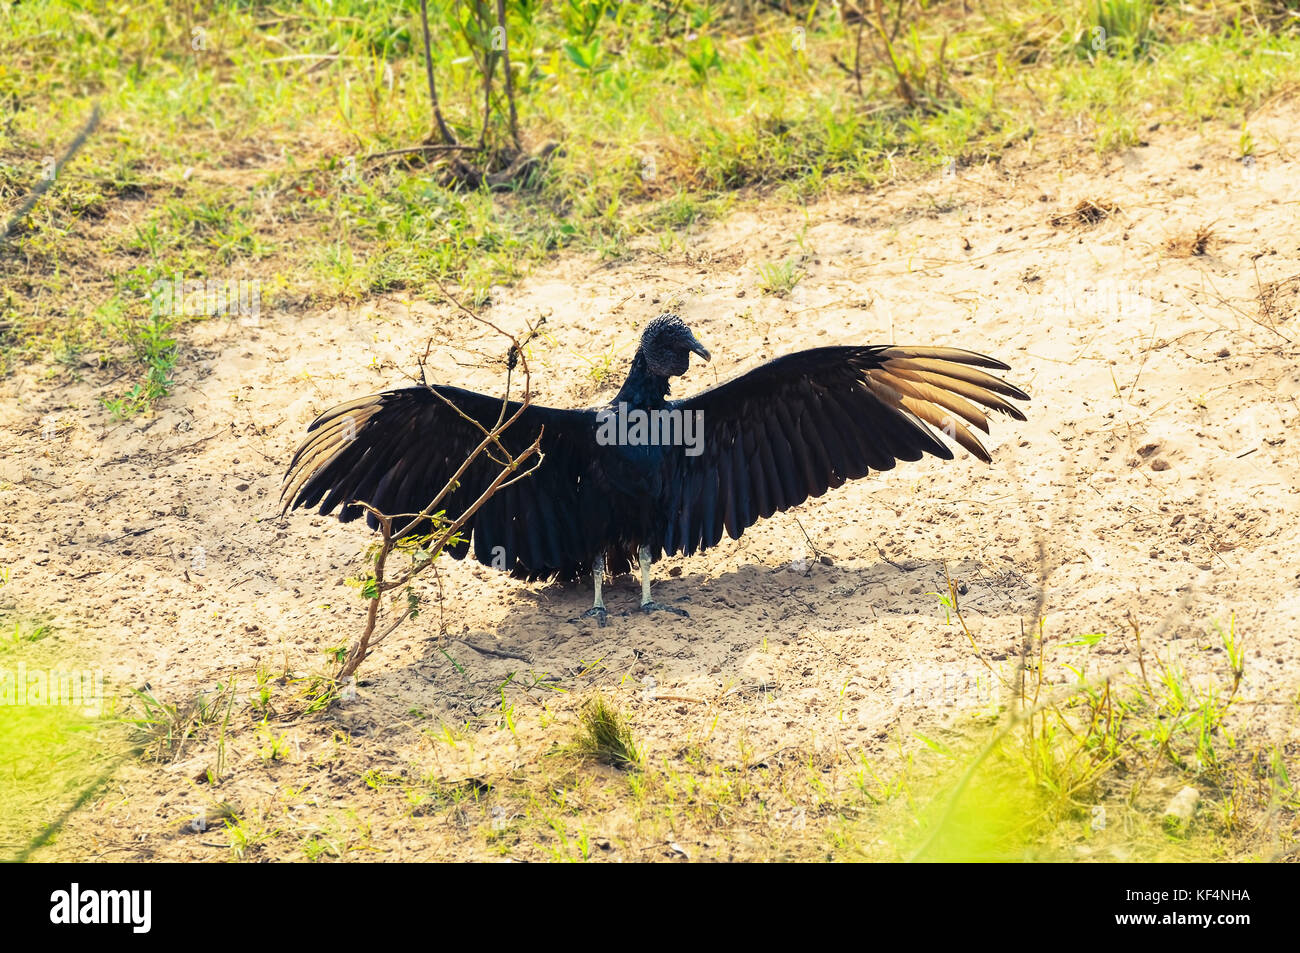 Black vulture Coragyps Atratus with open wings taking a sunbath on a sandy ground of Pantanal in Brazil. - Stock Image